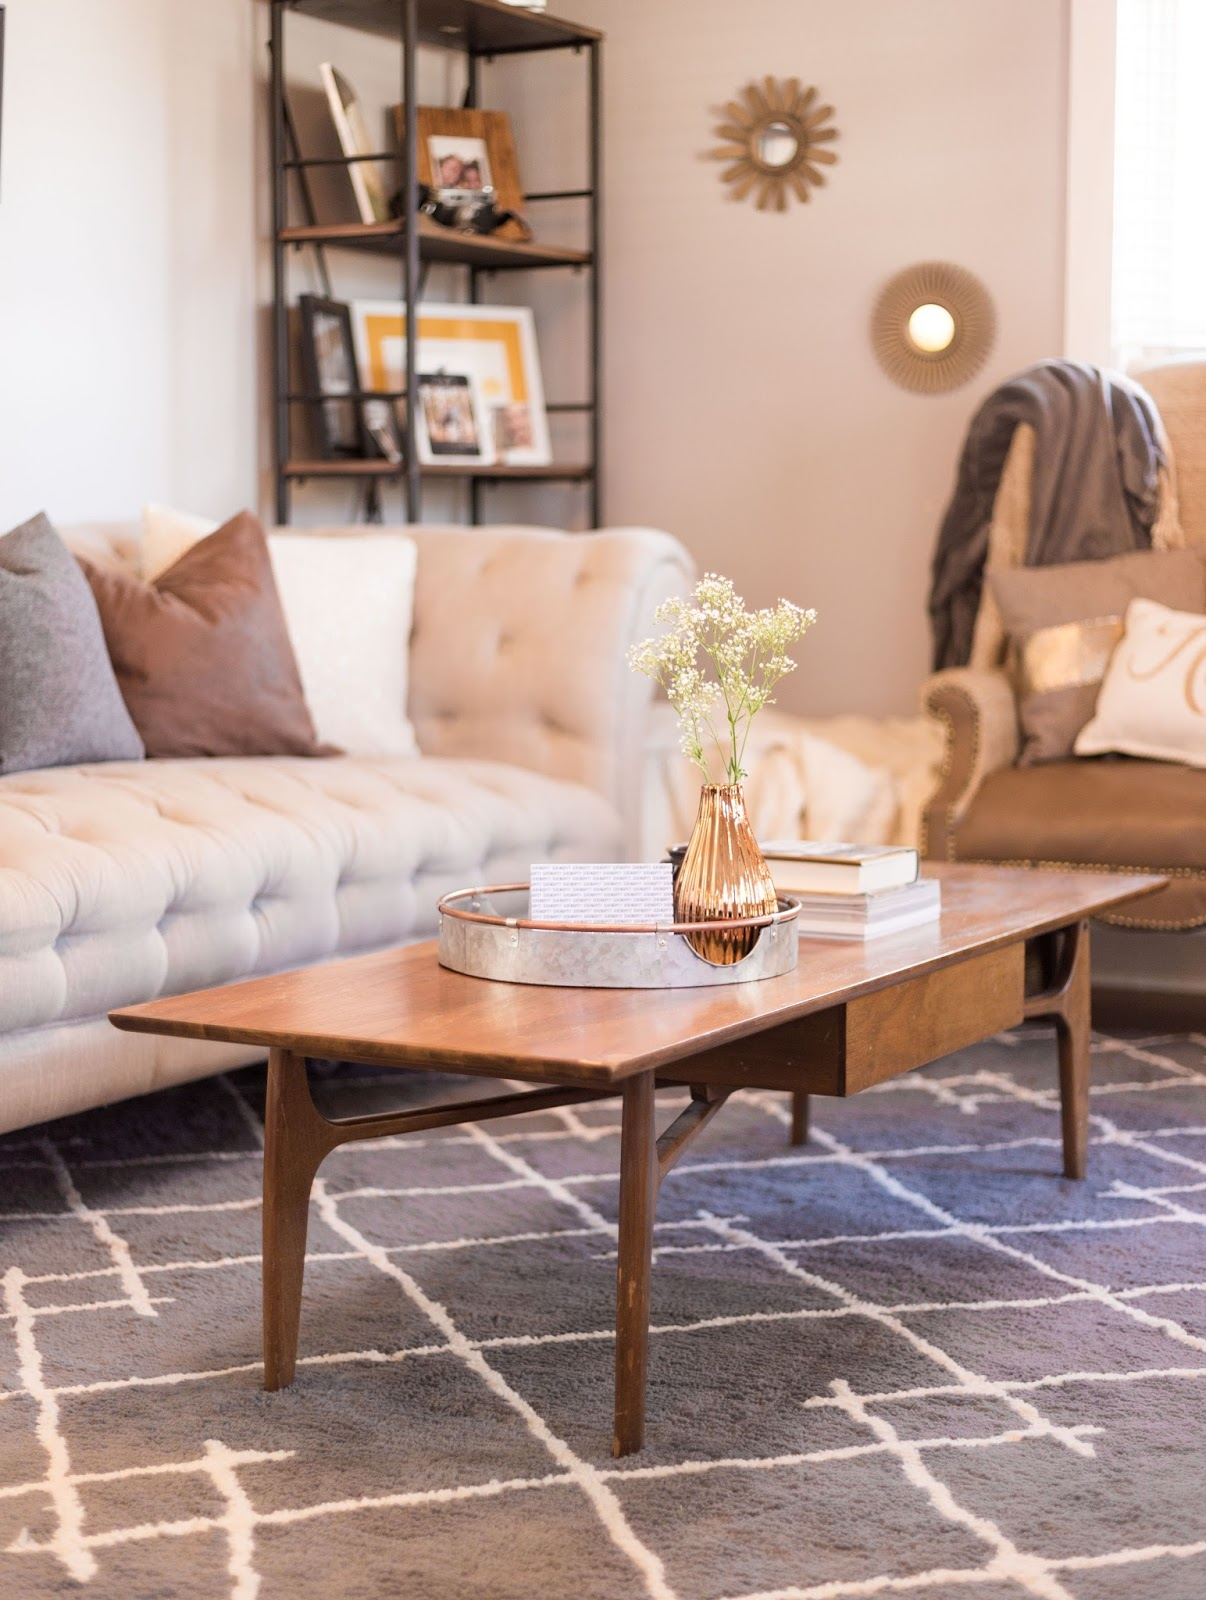 5 Tips To Freshen Up Your Home In The New Year by Colorado style blogger Eat Pray Wear Love